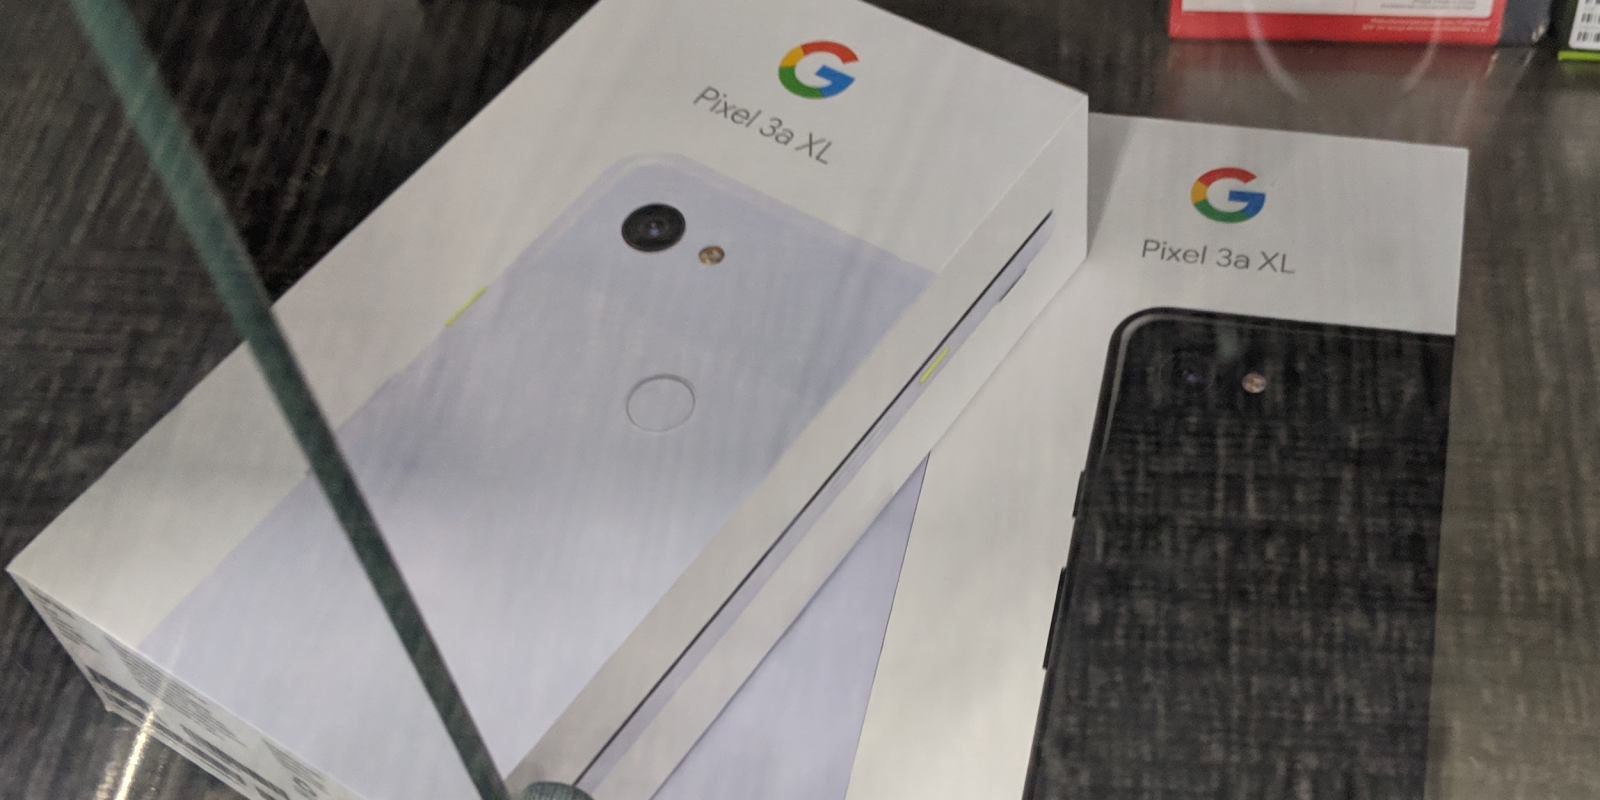 Pixel 3a XL already spotted at Best Buy, suggests imminent availability